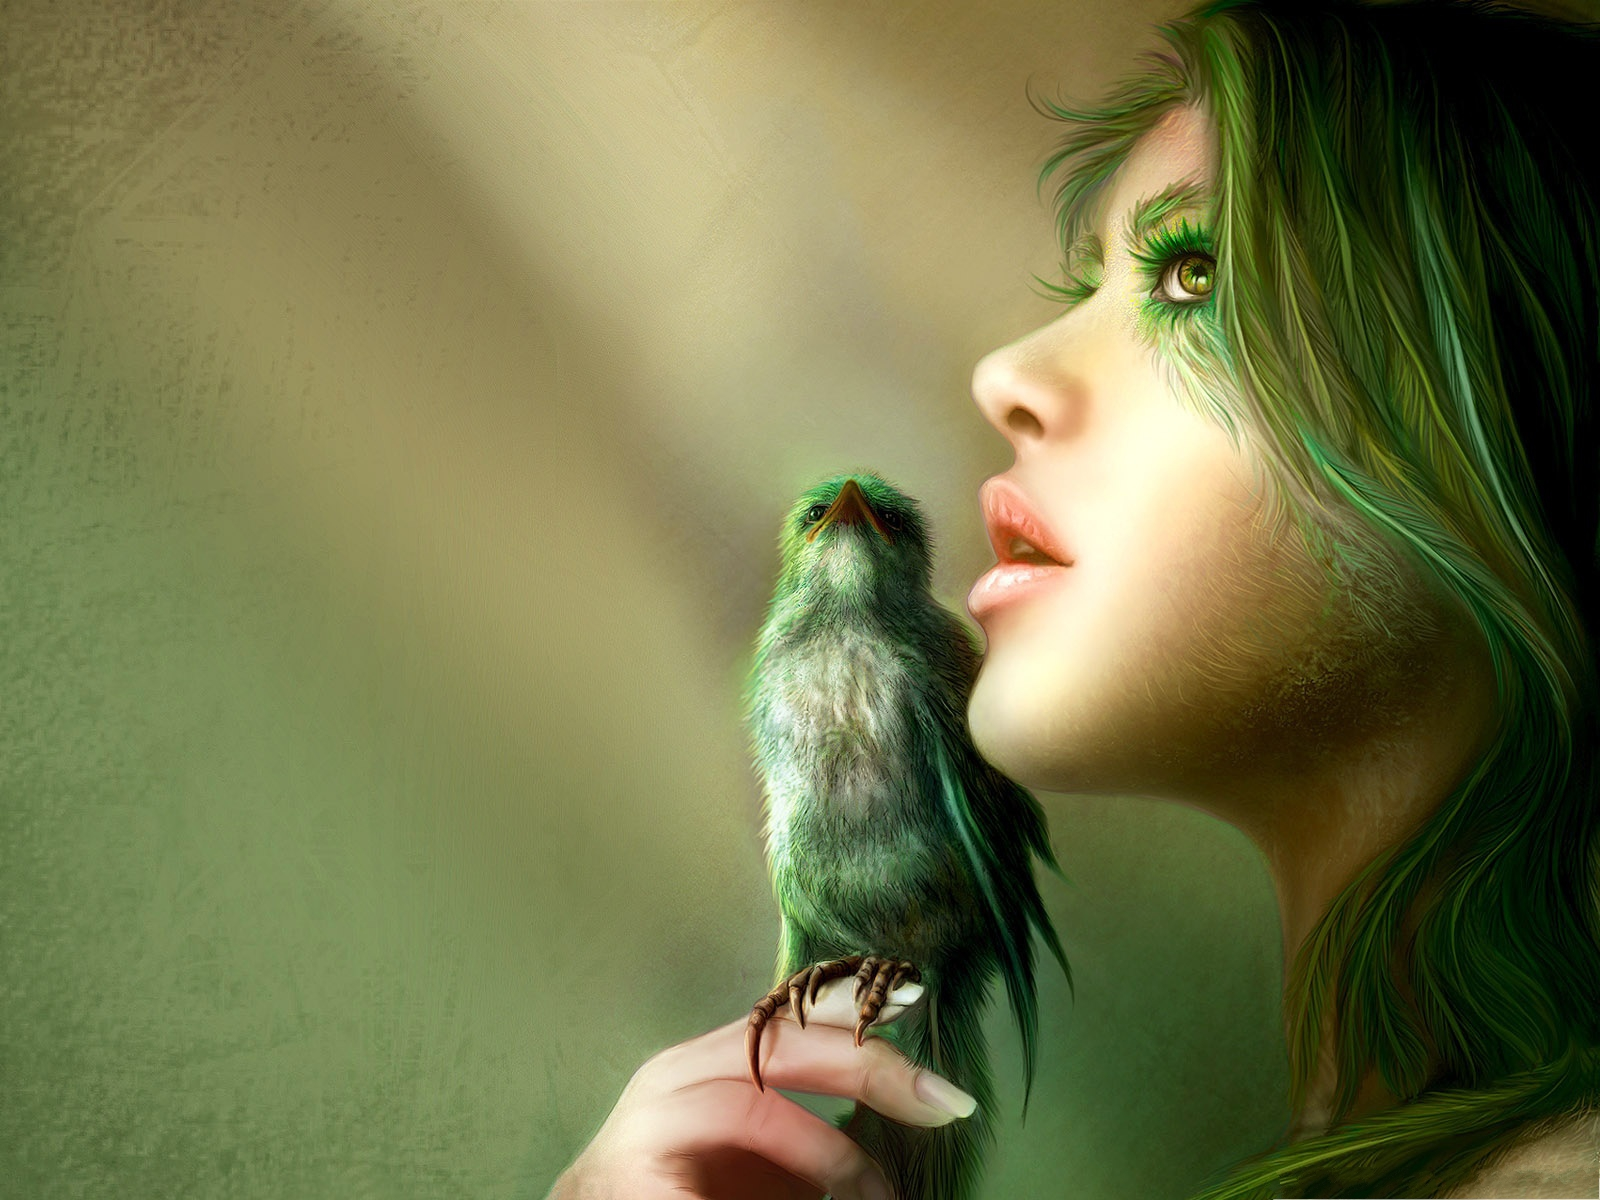 click to free download the wallpaper--Bird and Girl, Both in Green, They Match Each Other Well 1600X1200 free wallpaper download